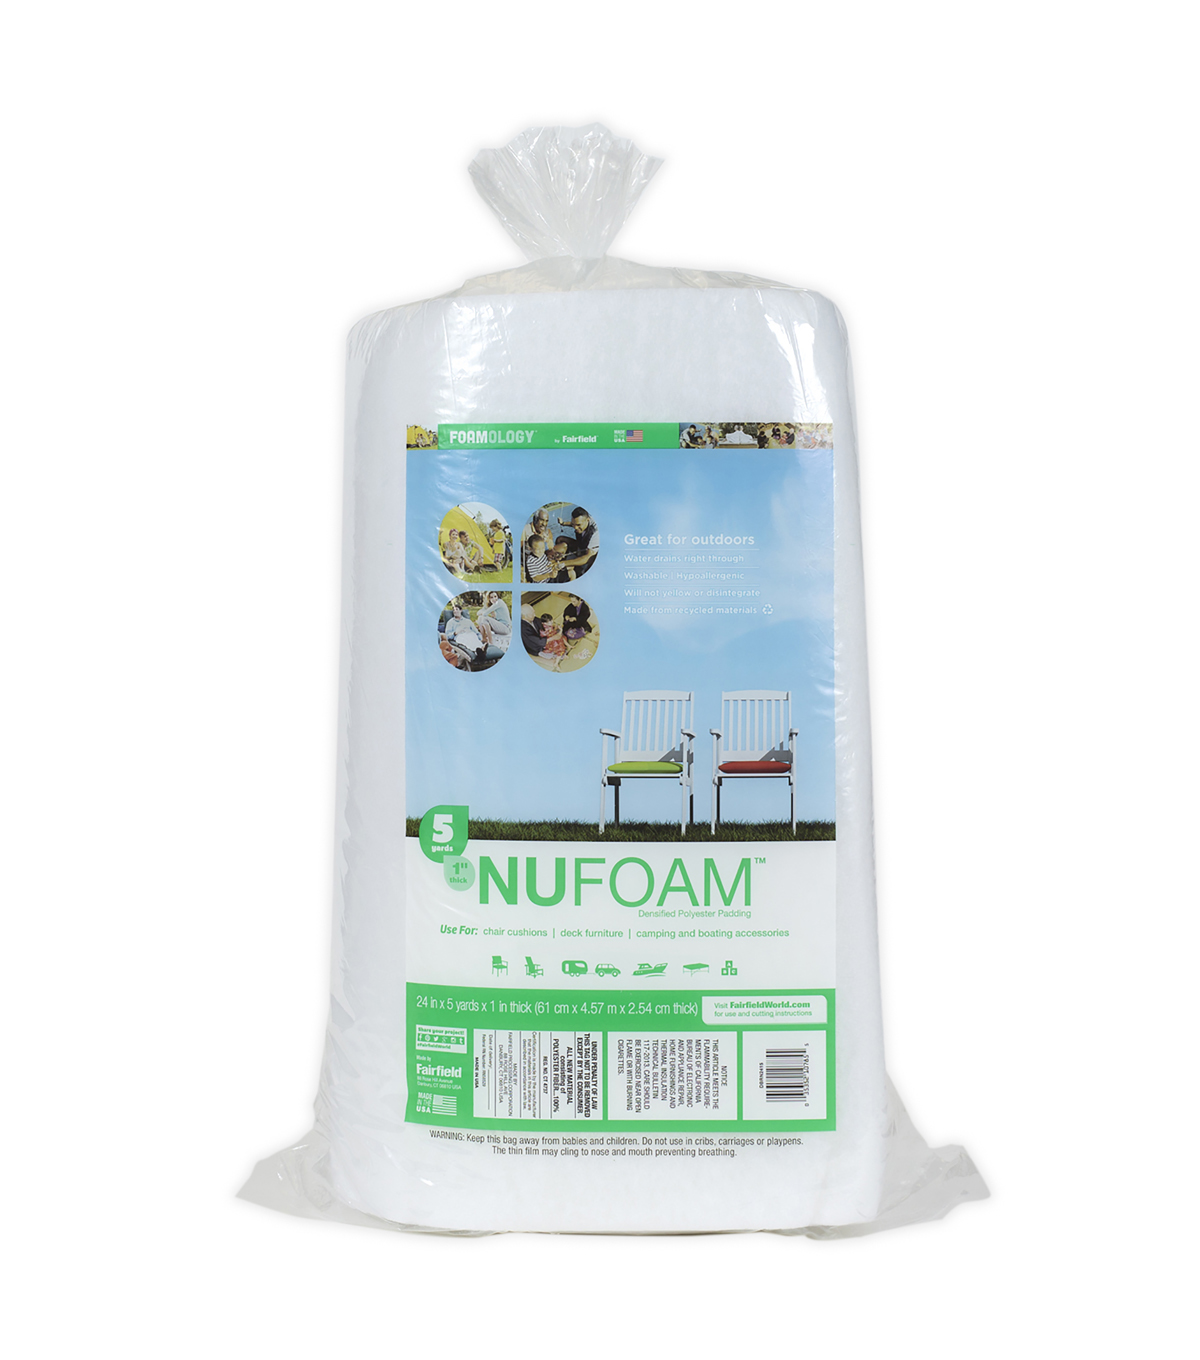 NuFoam Densified Polyester Padding Roll